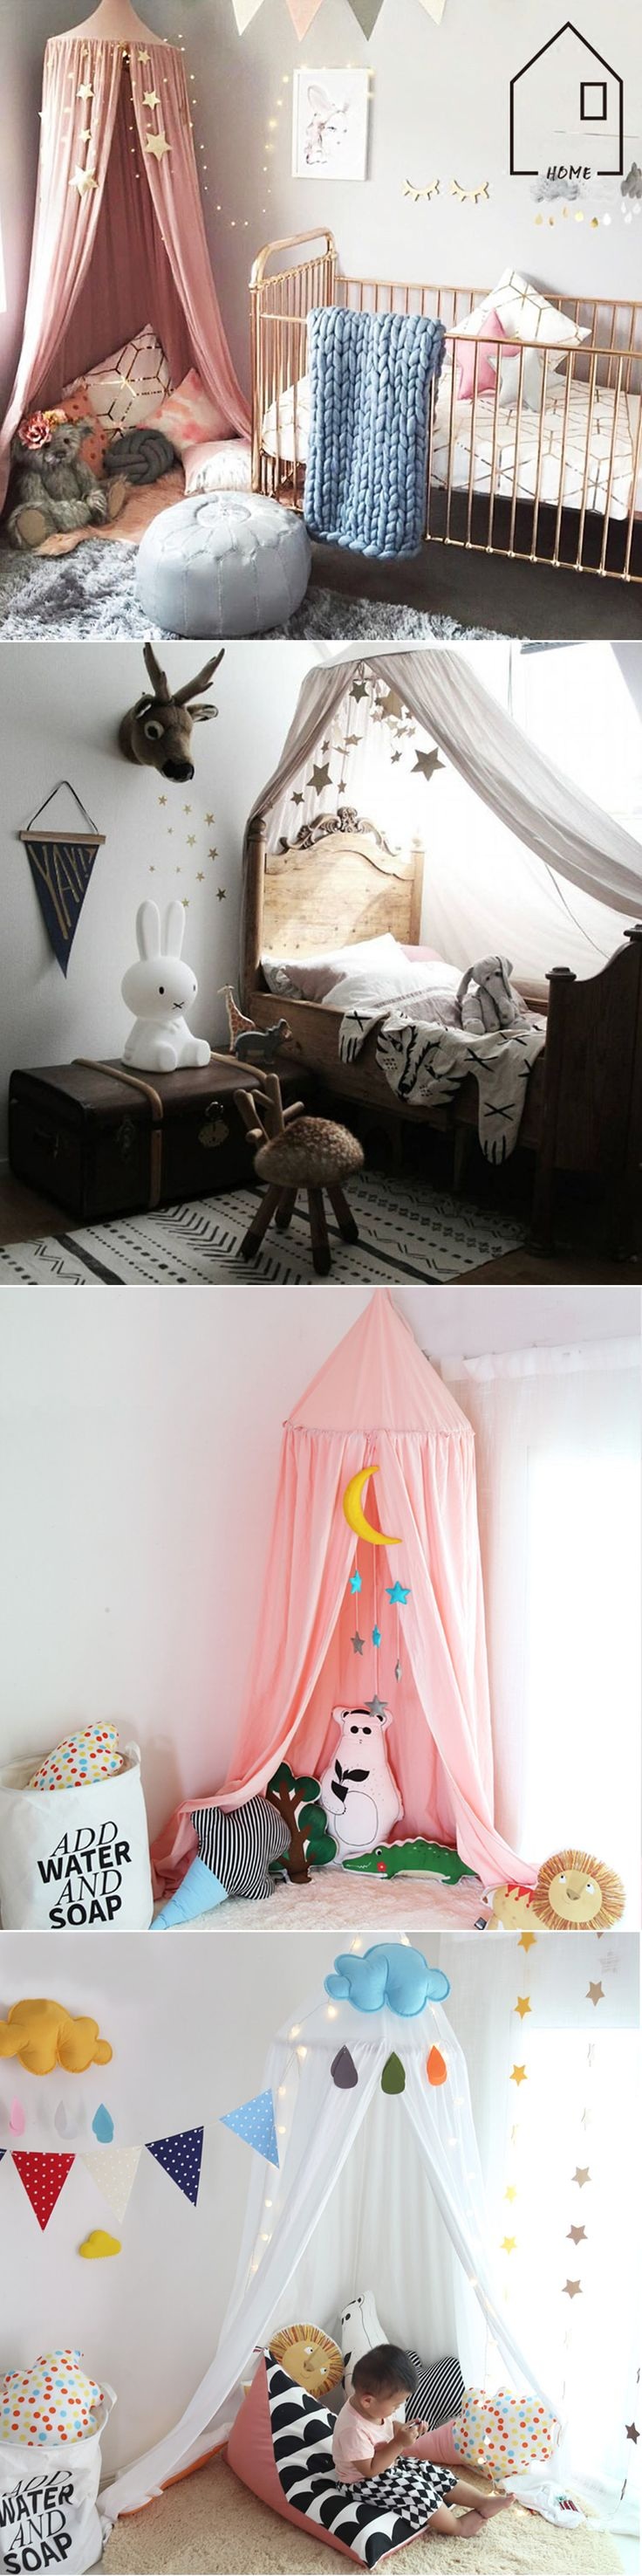 US$46.66 Elegant Round Cotton Bed Canopy Children's Bedroom Anti-mosquito Curtain Hung Dome Home Furniture